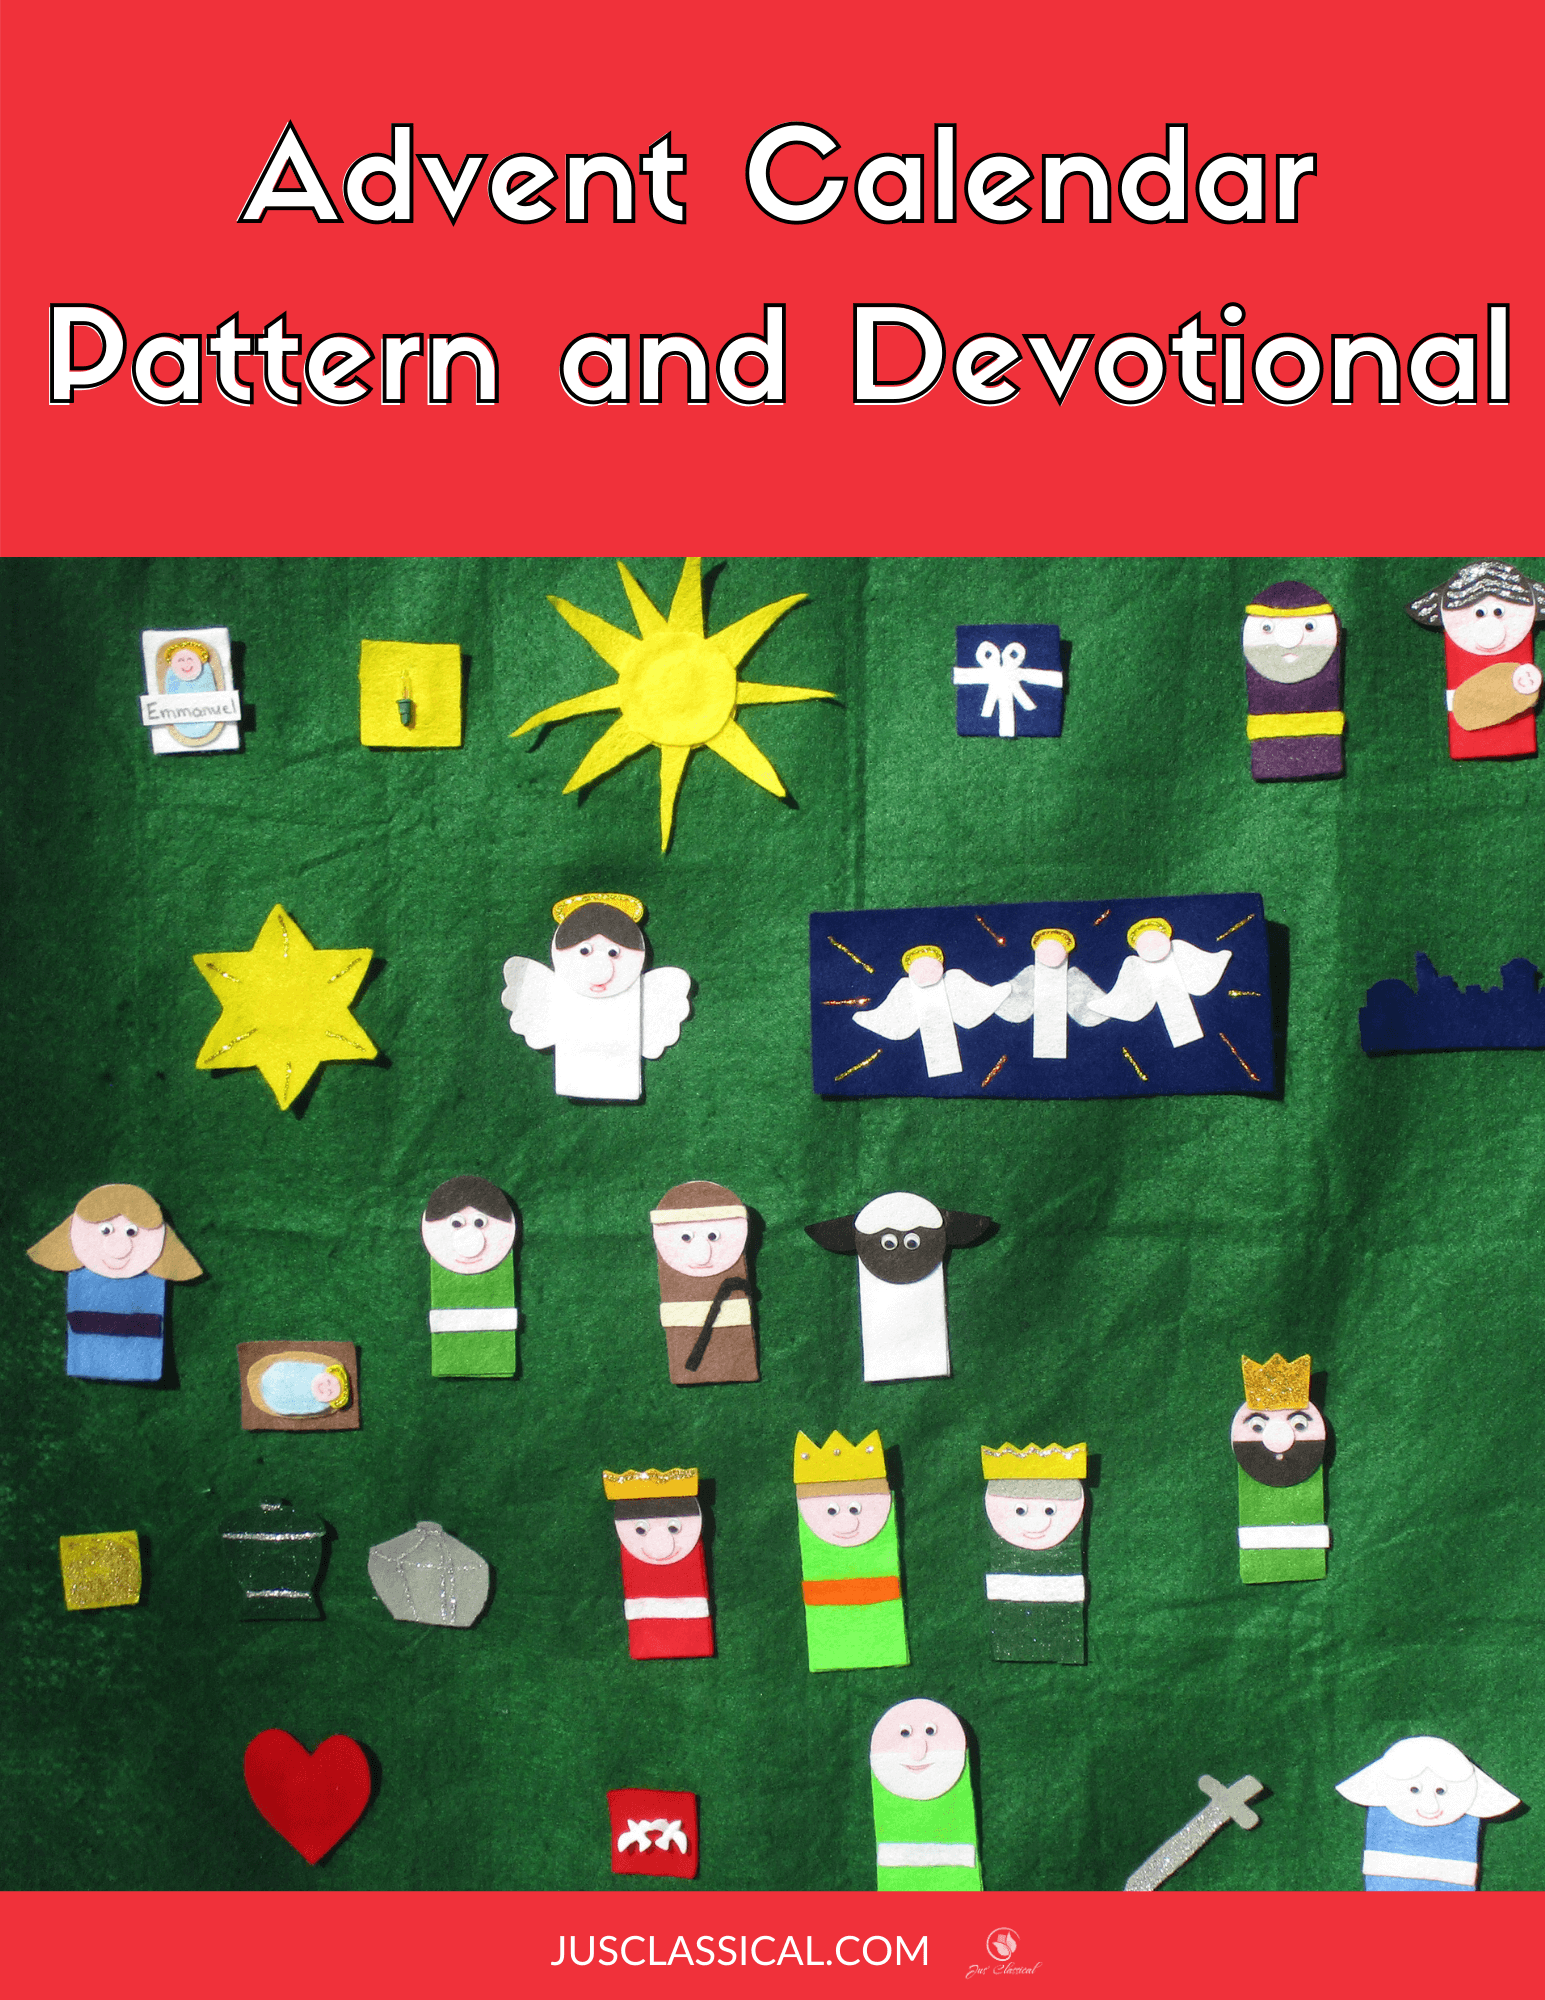 picture of a felt Christ-focused Advent calendar with the title Advent Calendar Pattern and Devotional.